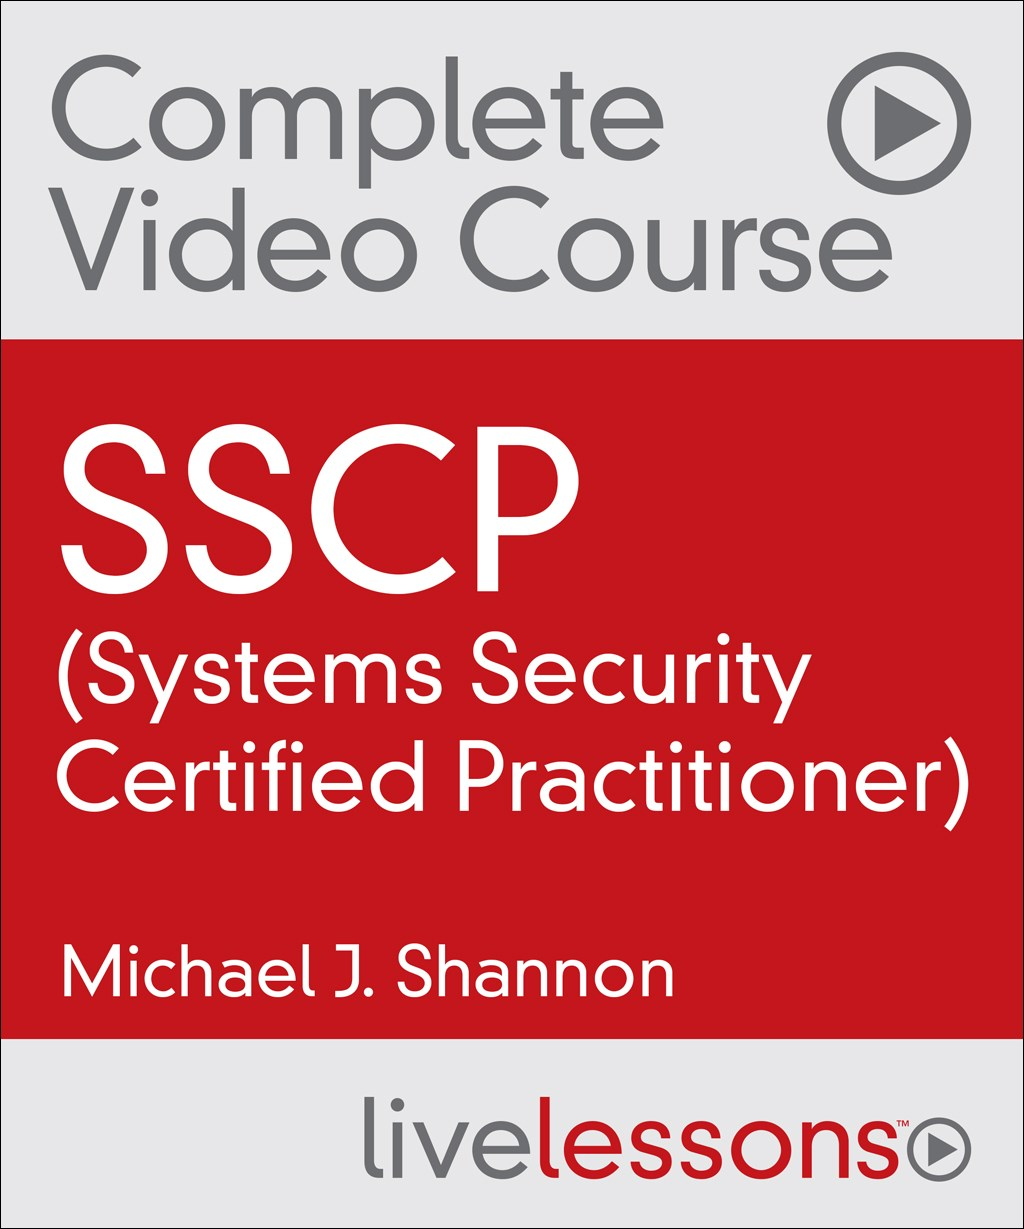 SSCP (Systems Security Certified Practitioner) Premium Edition Complete Video Course